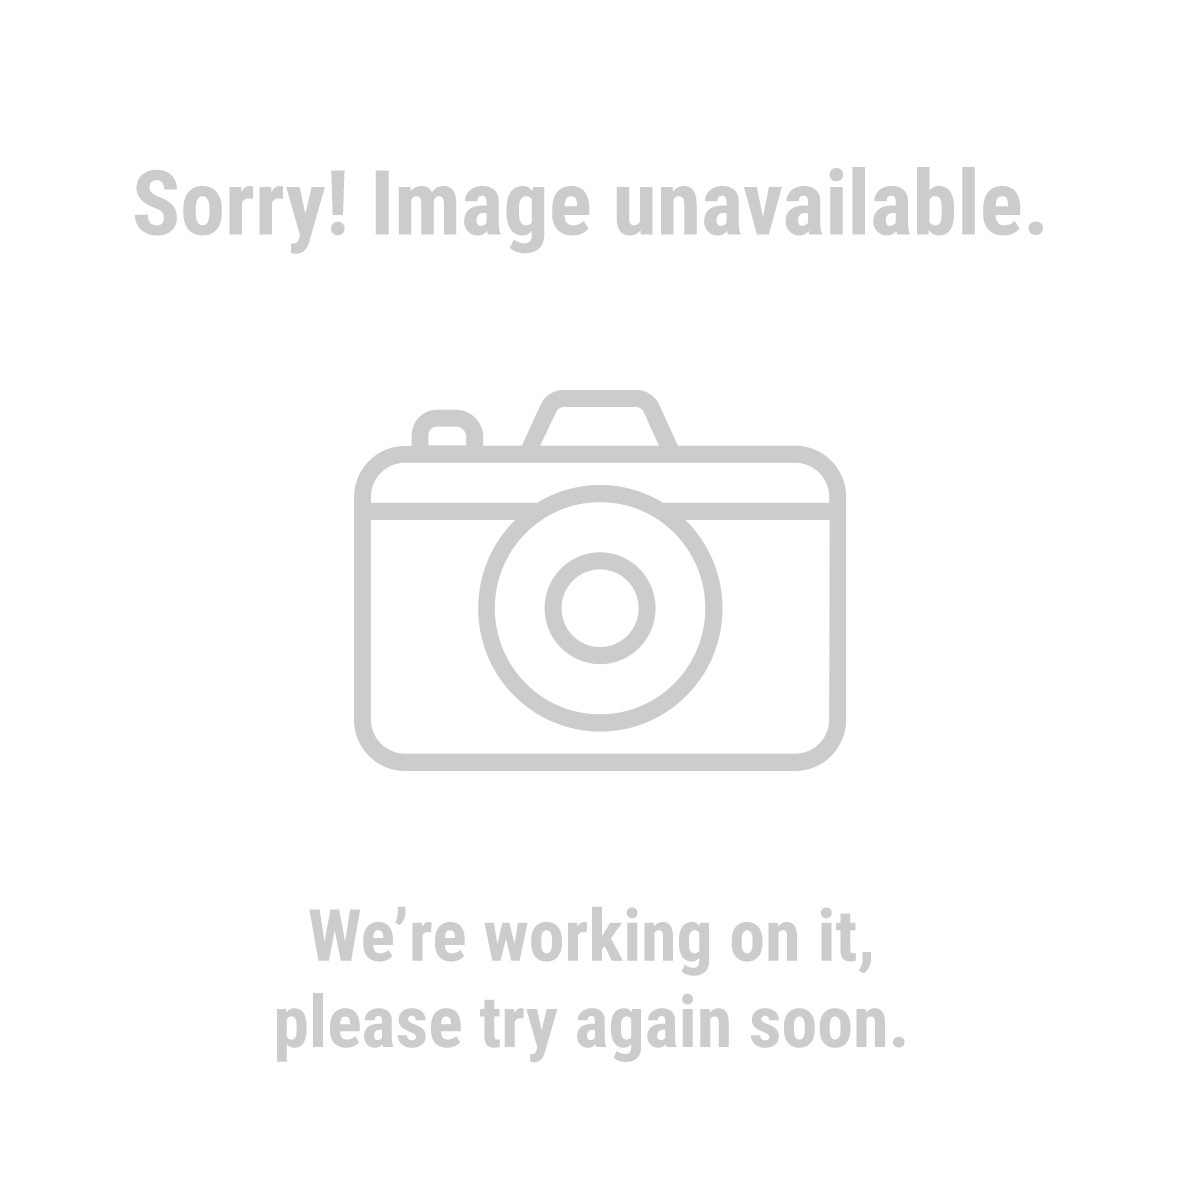 Pacific Hydrostar 69303 1-1/2 Horsepower Whole House Water Pressure Booster Pump with Stainless Steel Housing